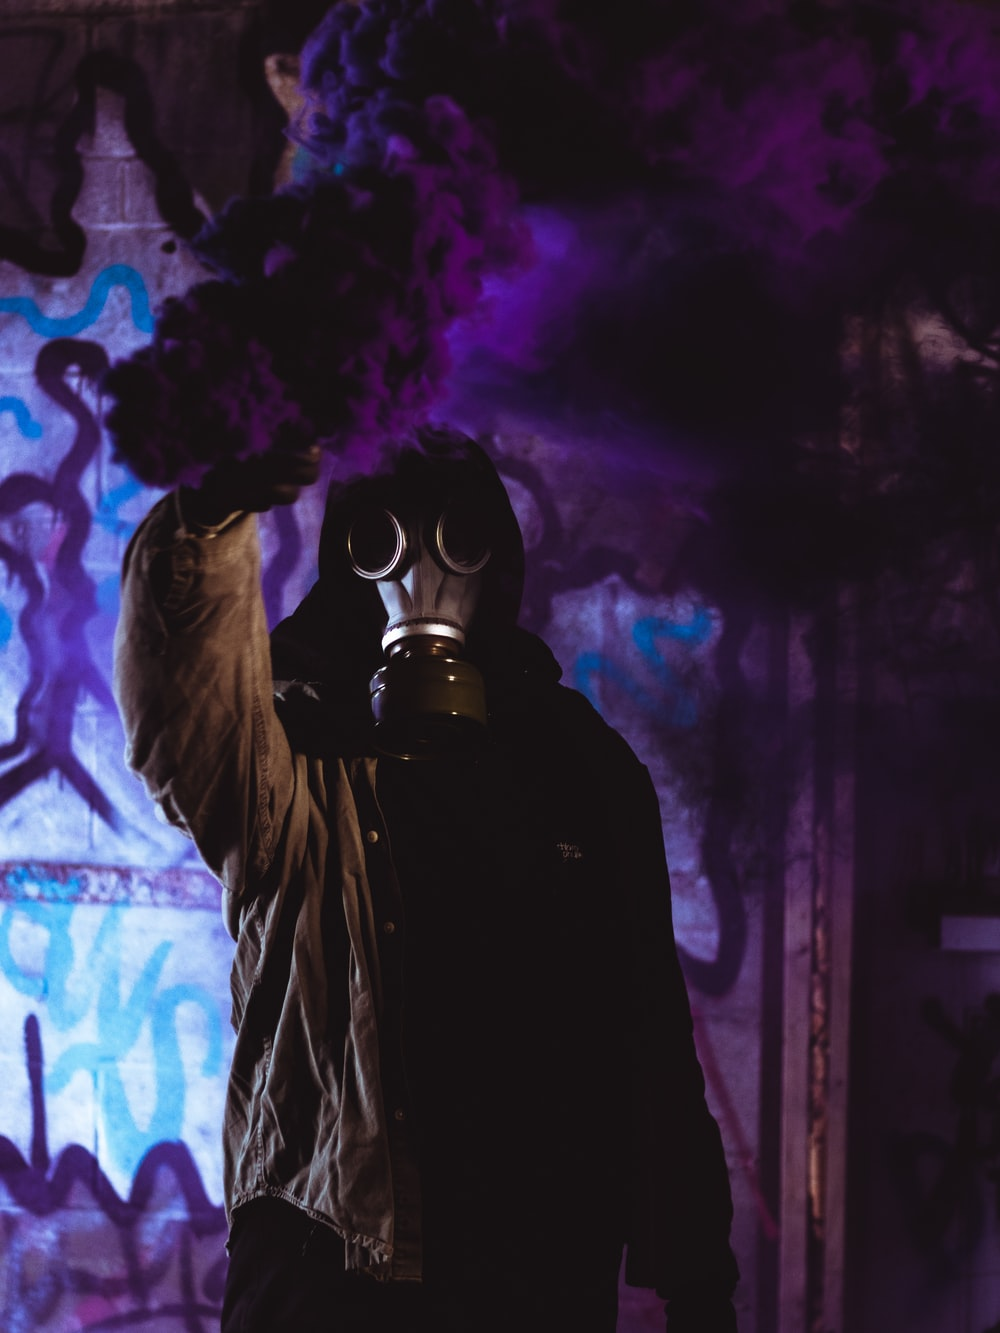 person wearing mask holding paint pray